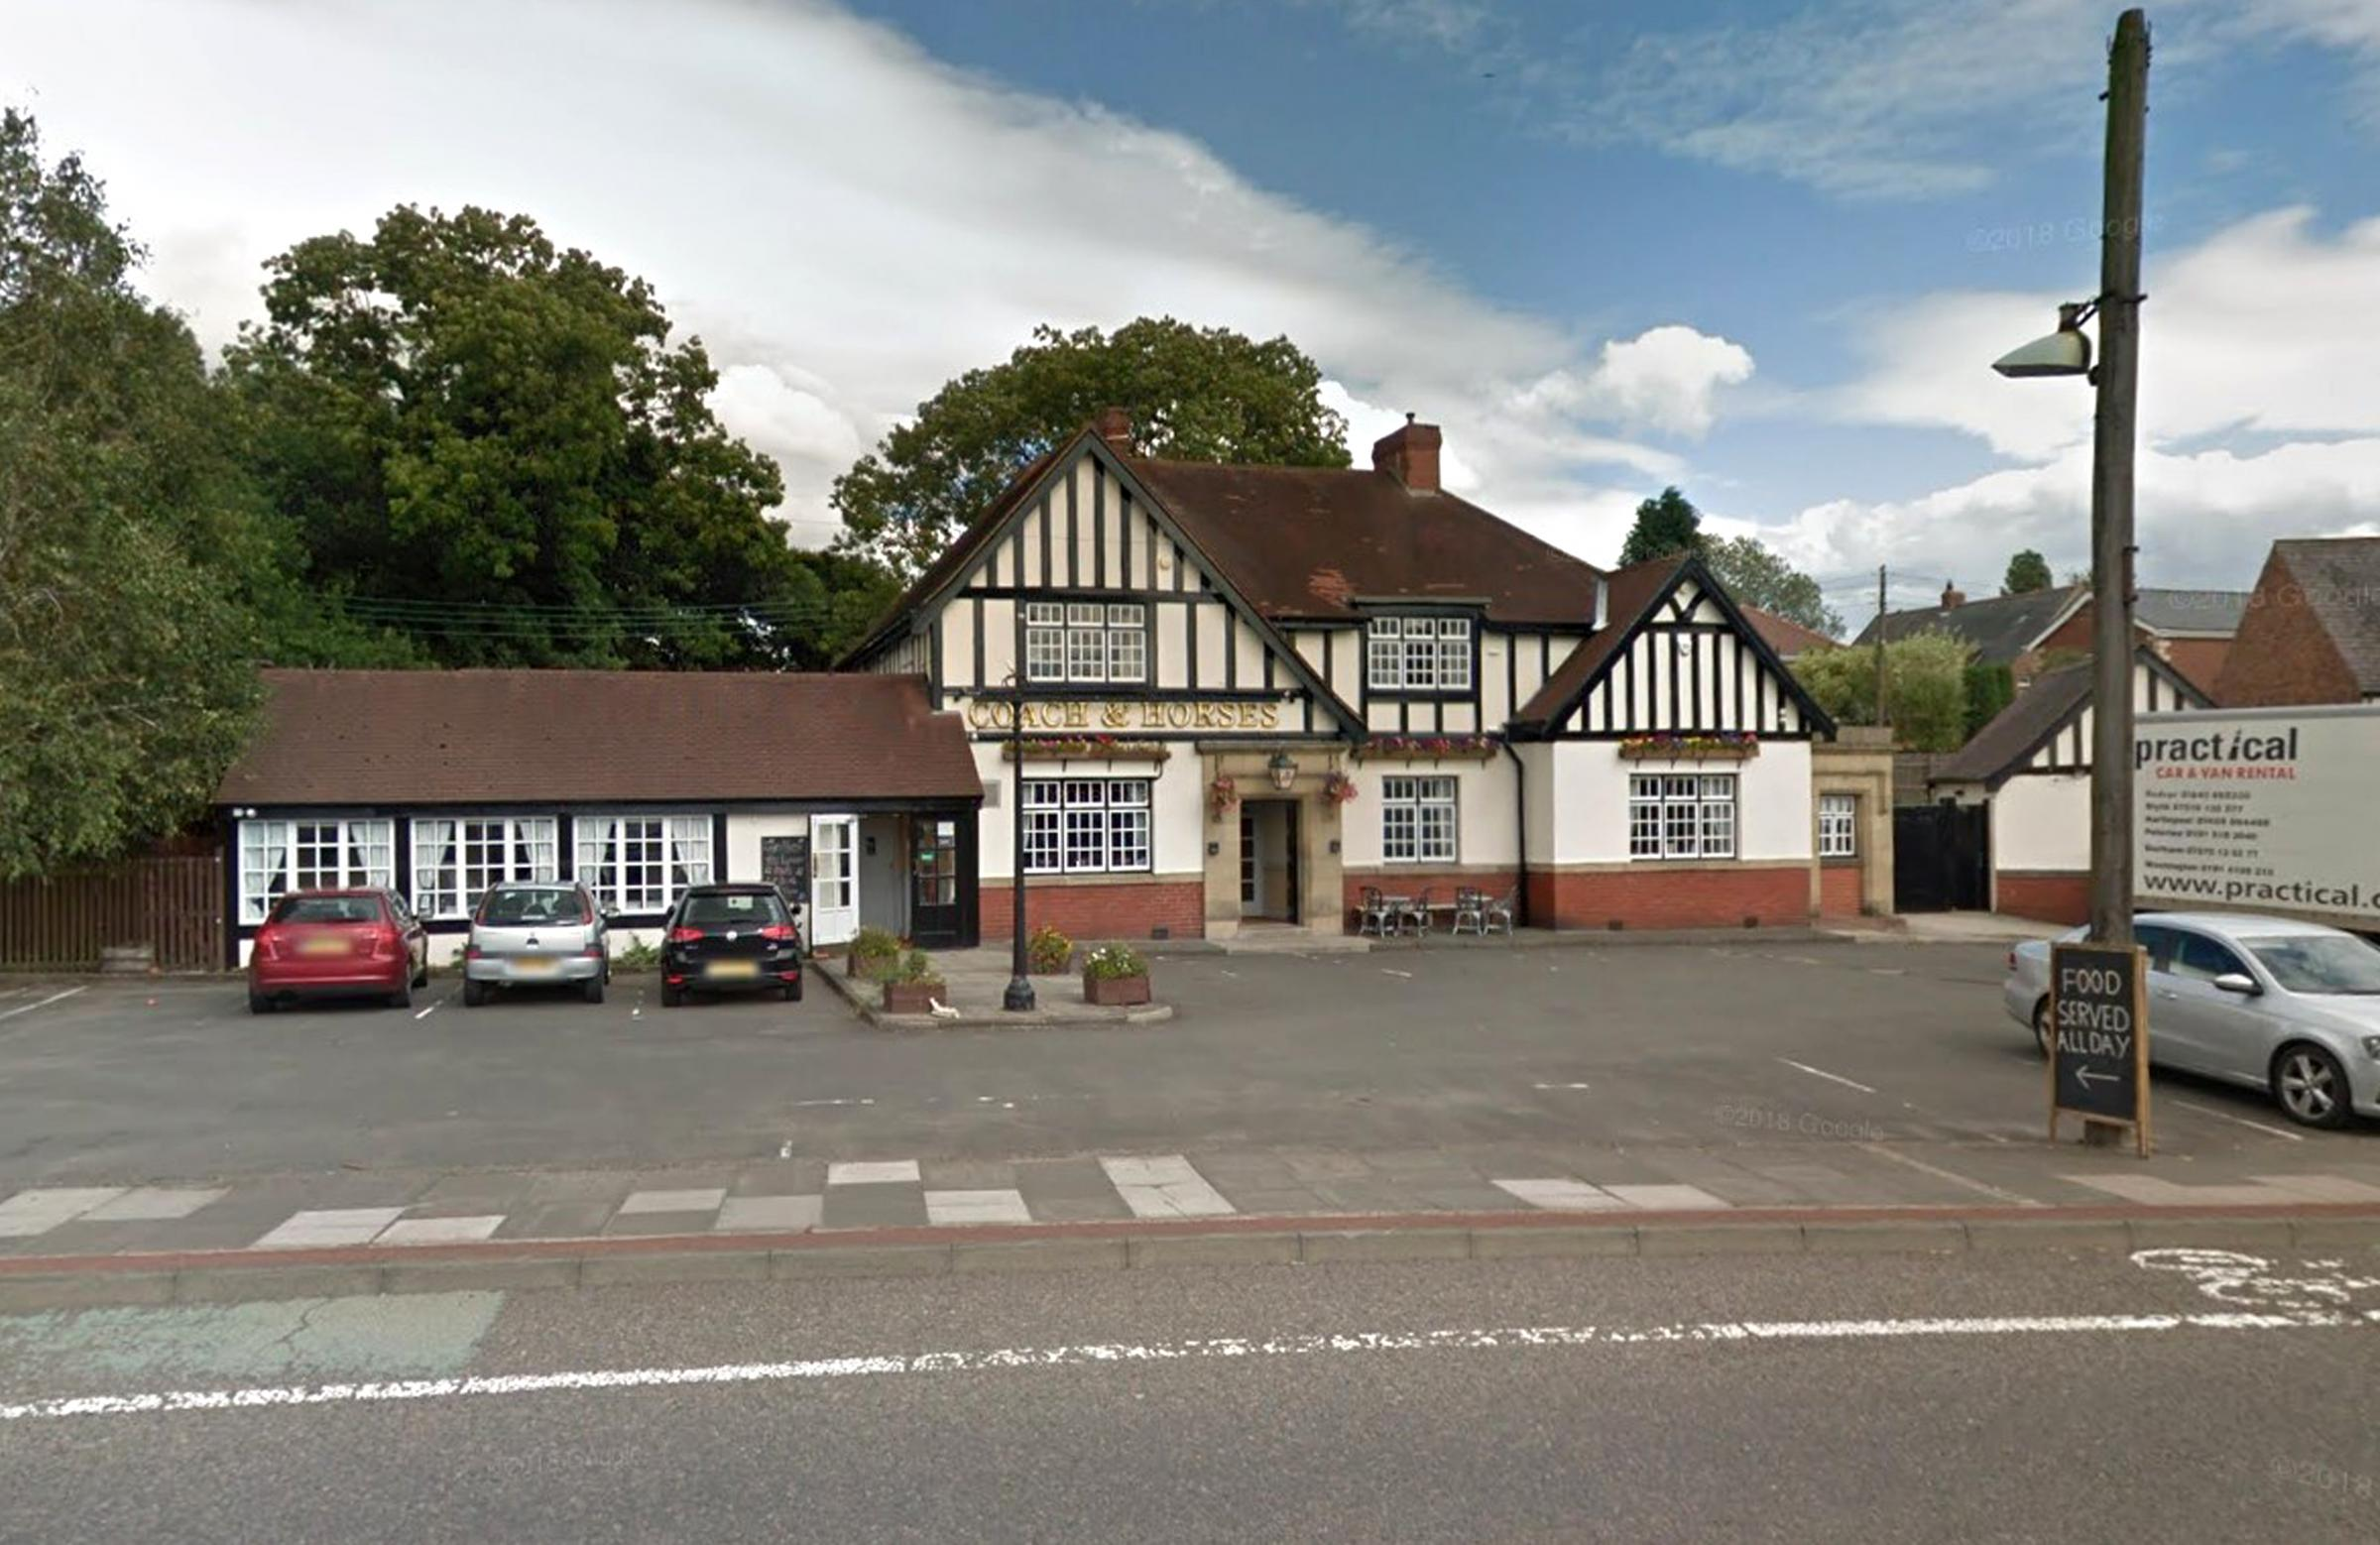 MAN CHARGED: A man has been charged following a suspected stabbing outside the Coach and Horses pub in Birtley Picture: Google